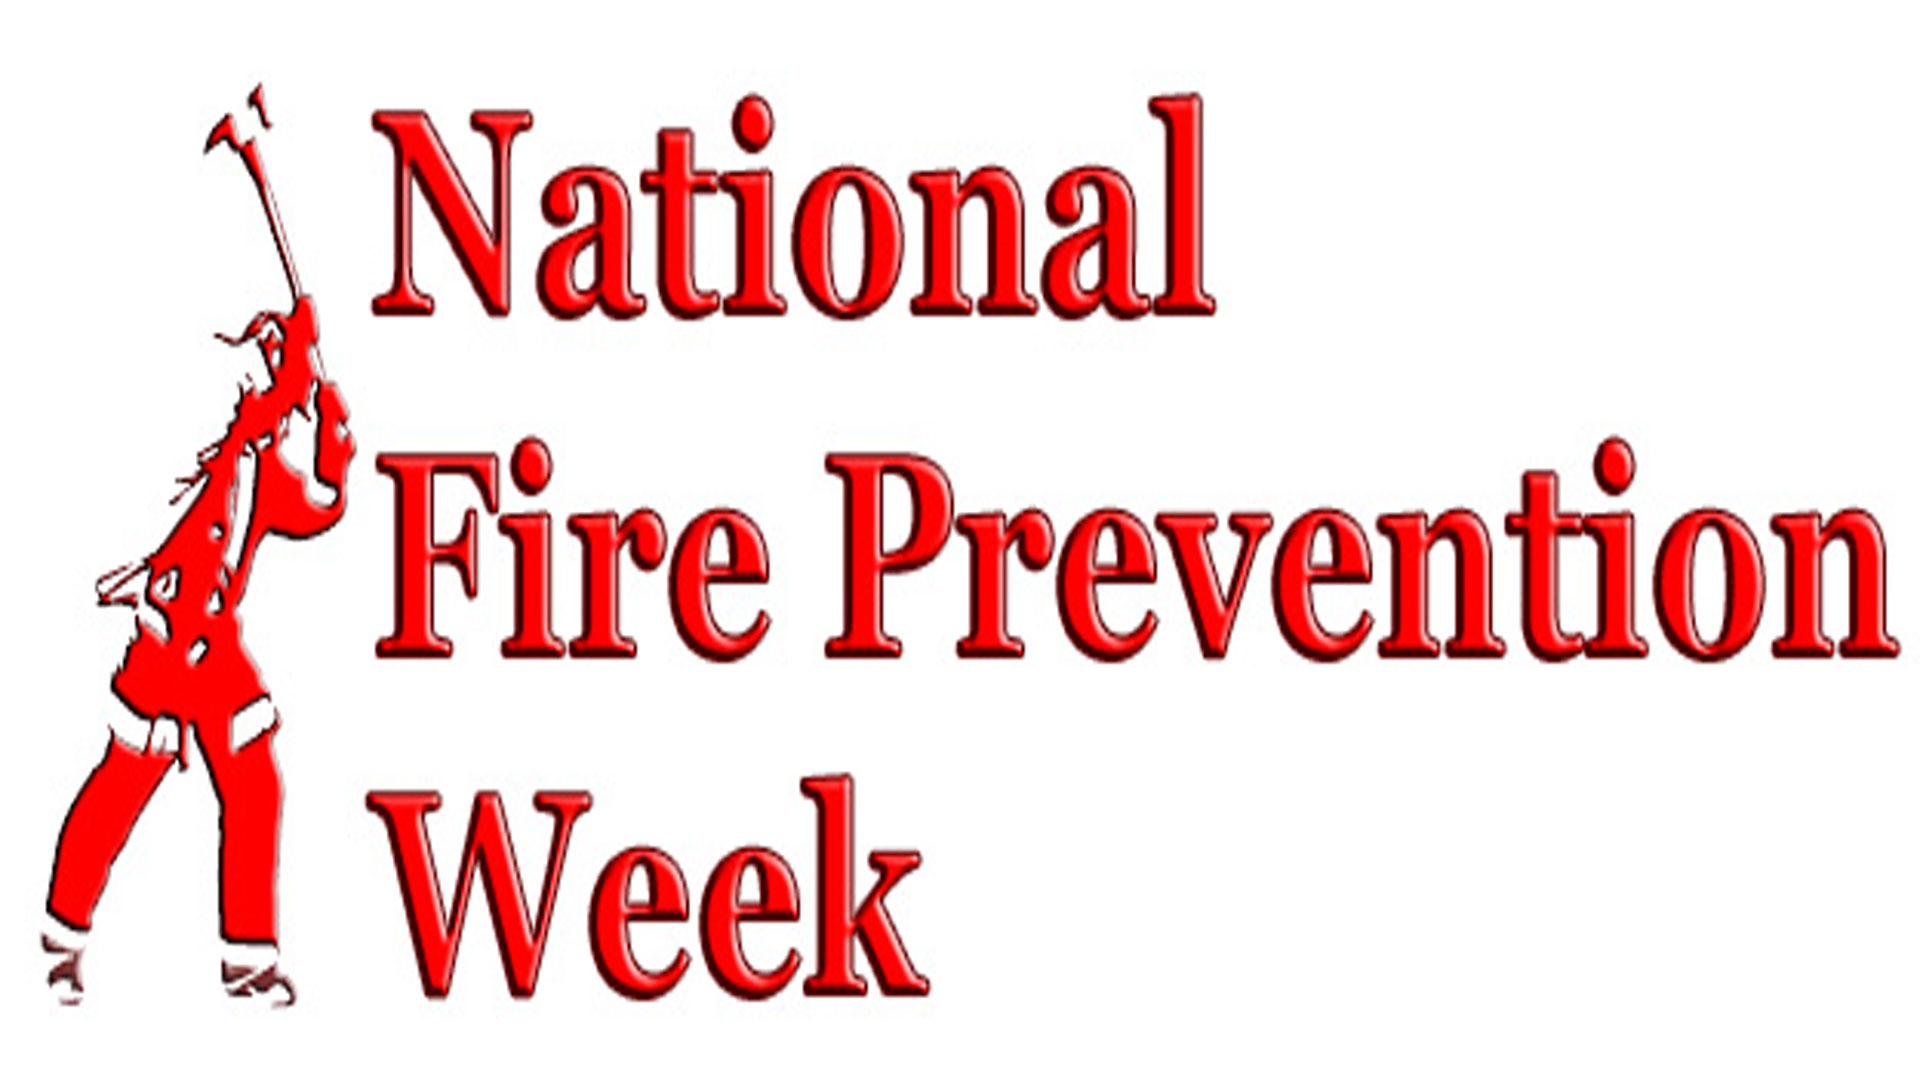 National Fire Prevention Week October 7 To 13